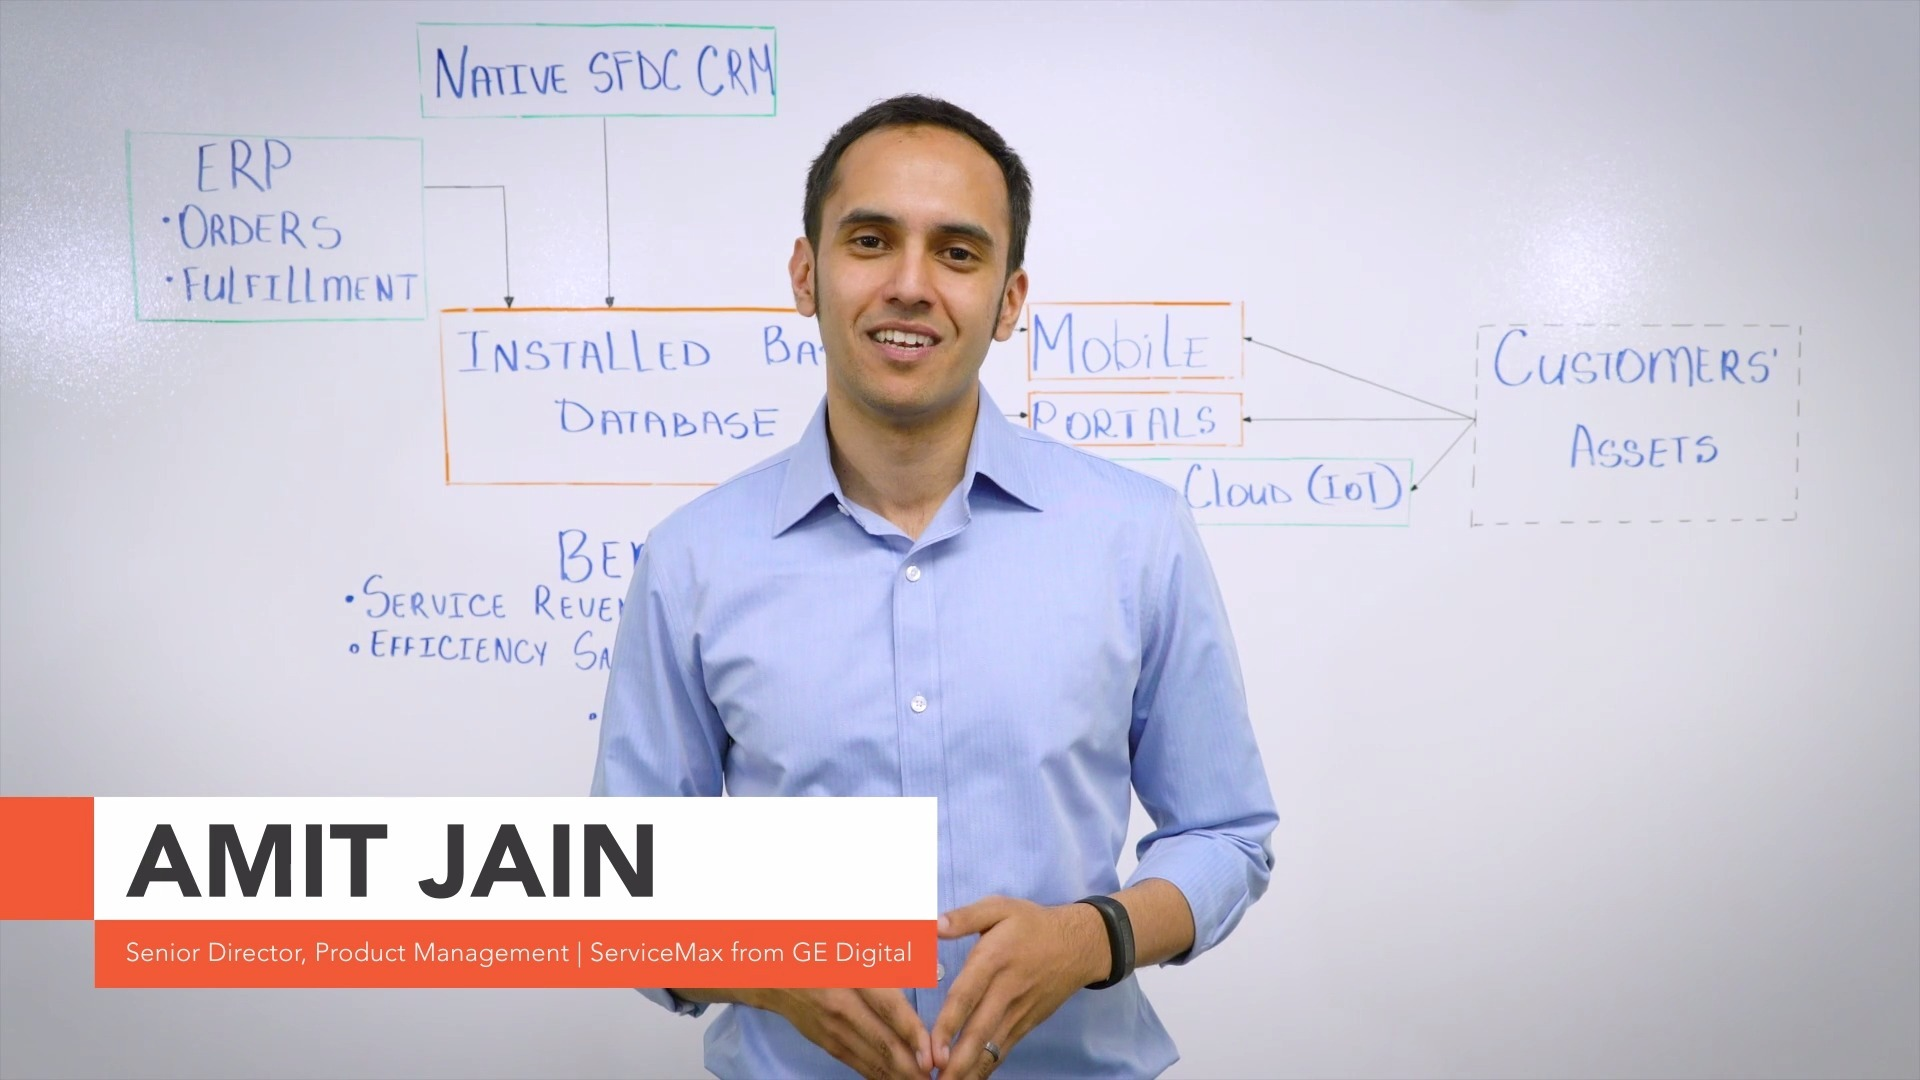 Maxpert Video White Board Series - Amit Jain